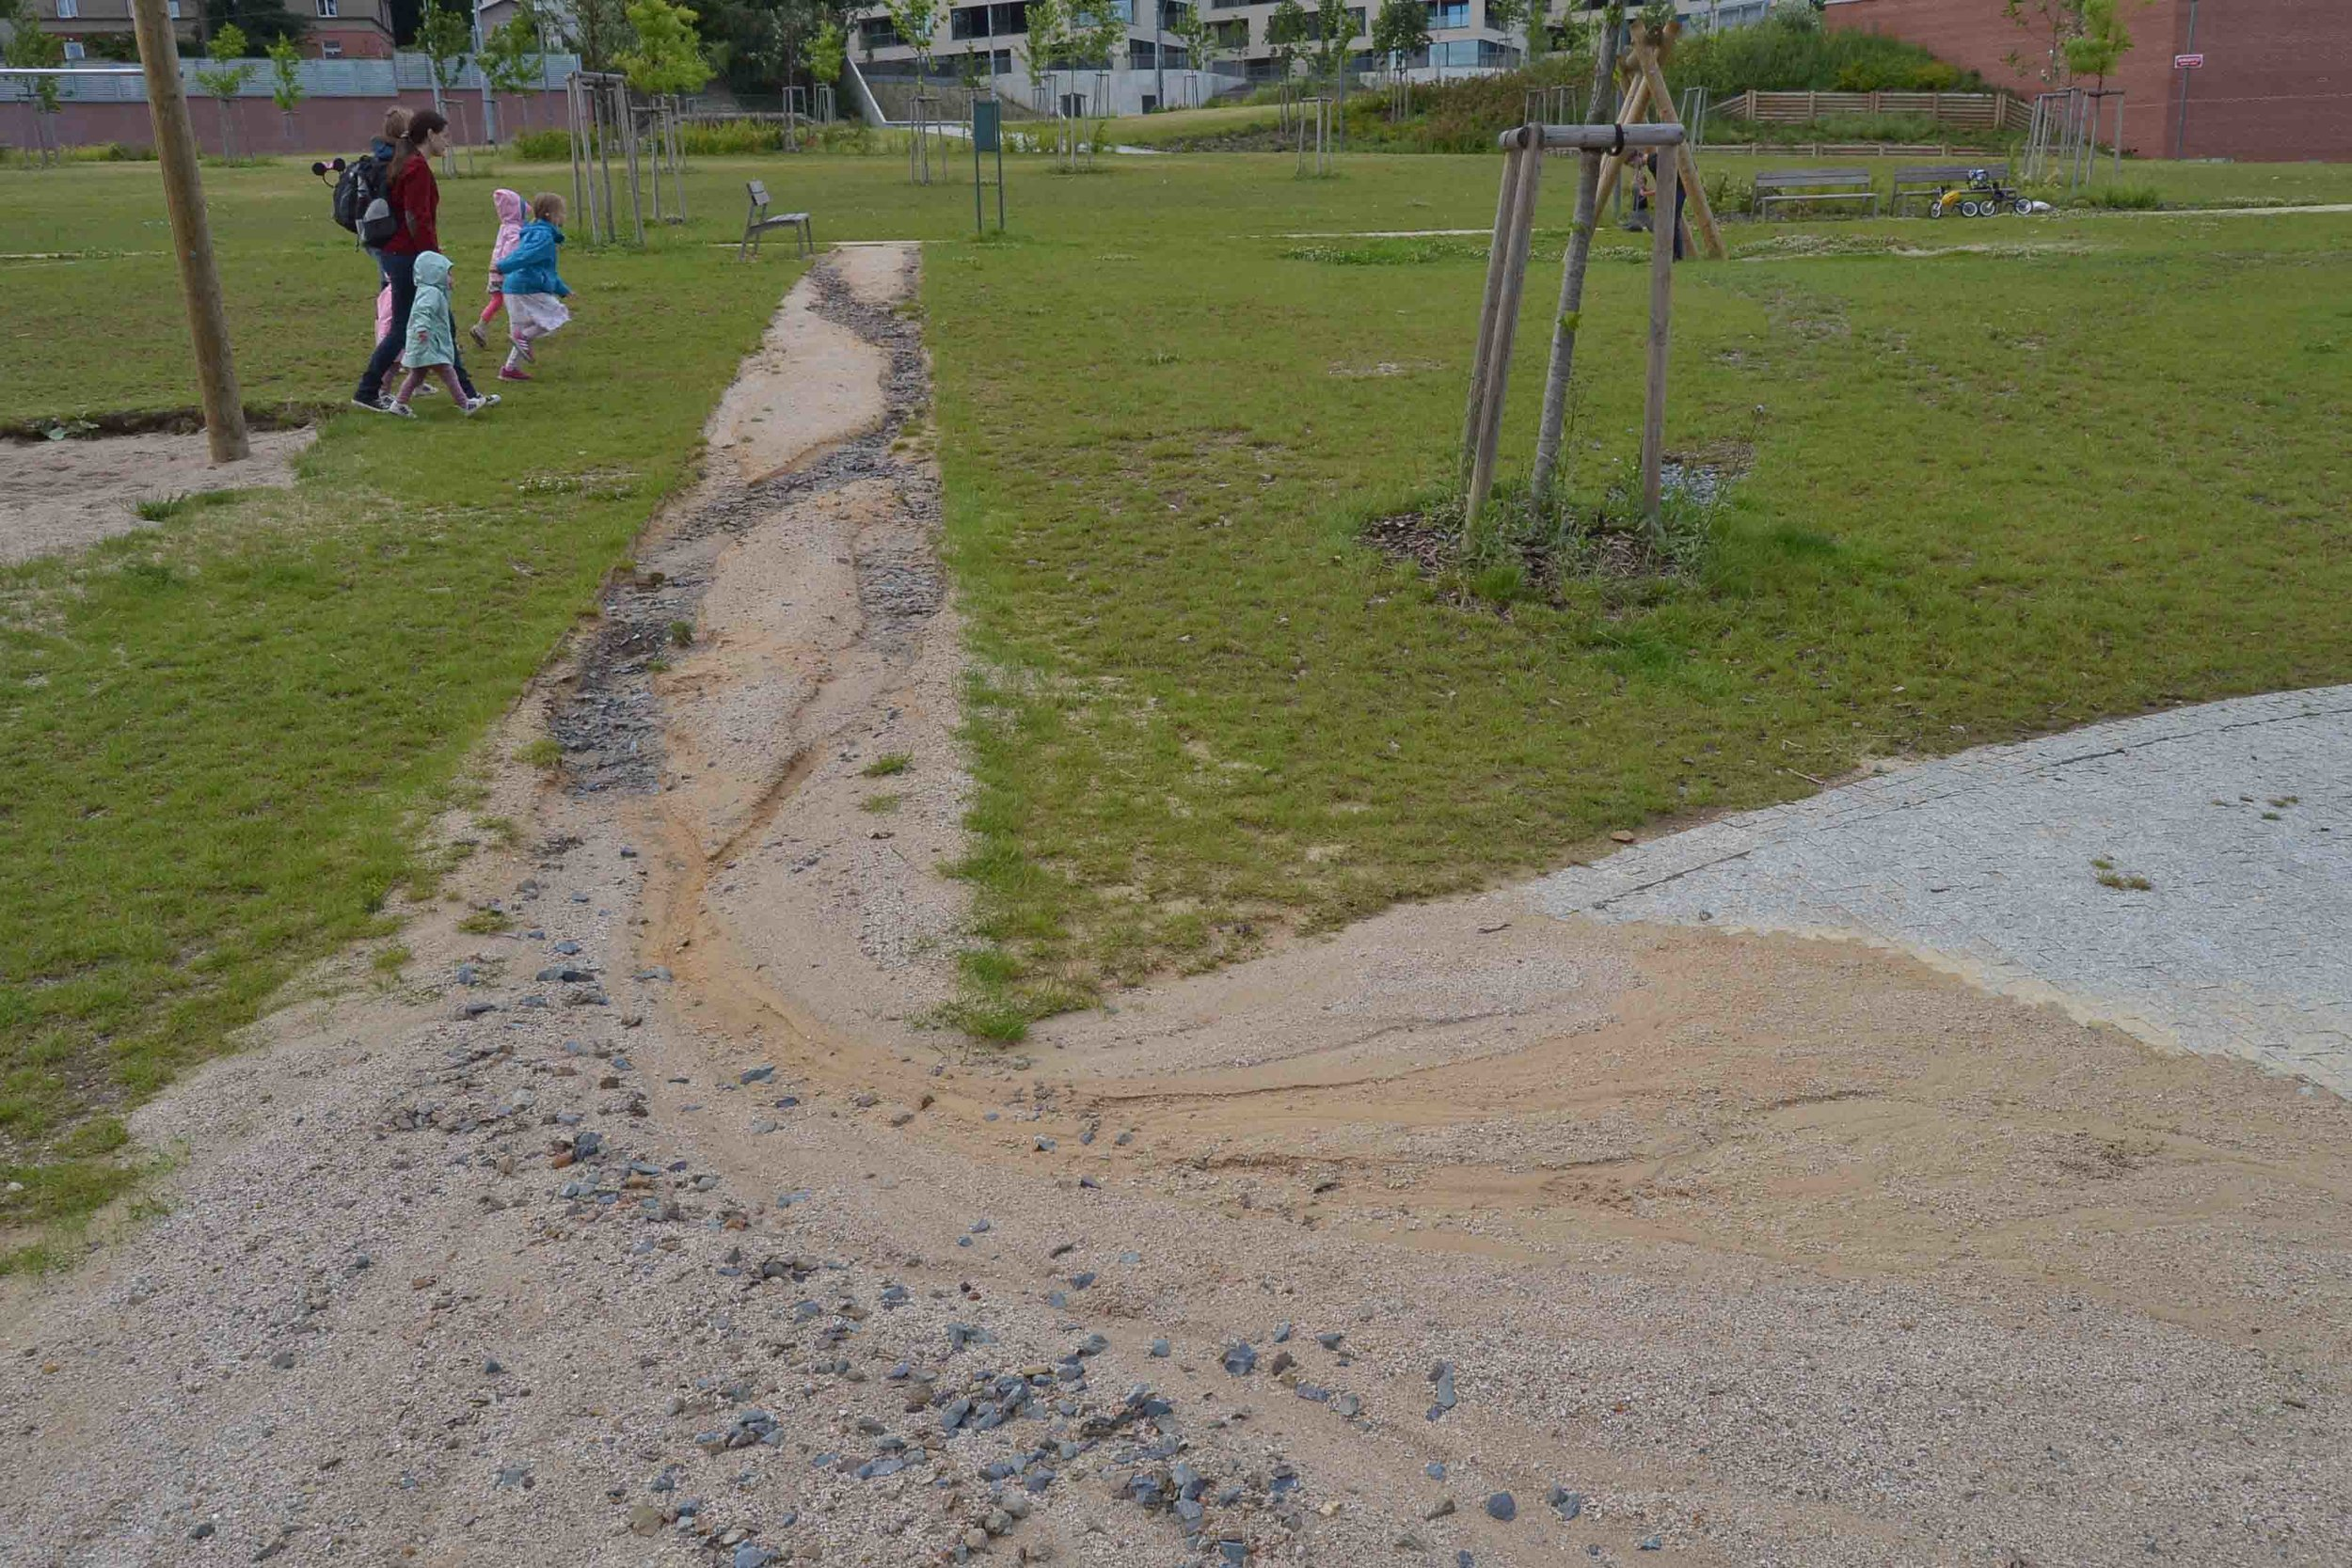 Pathways requiring some maintenance - gravel washed away by rain